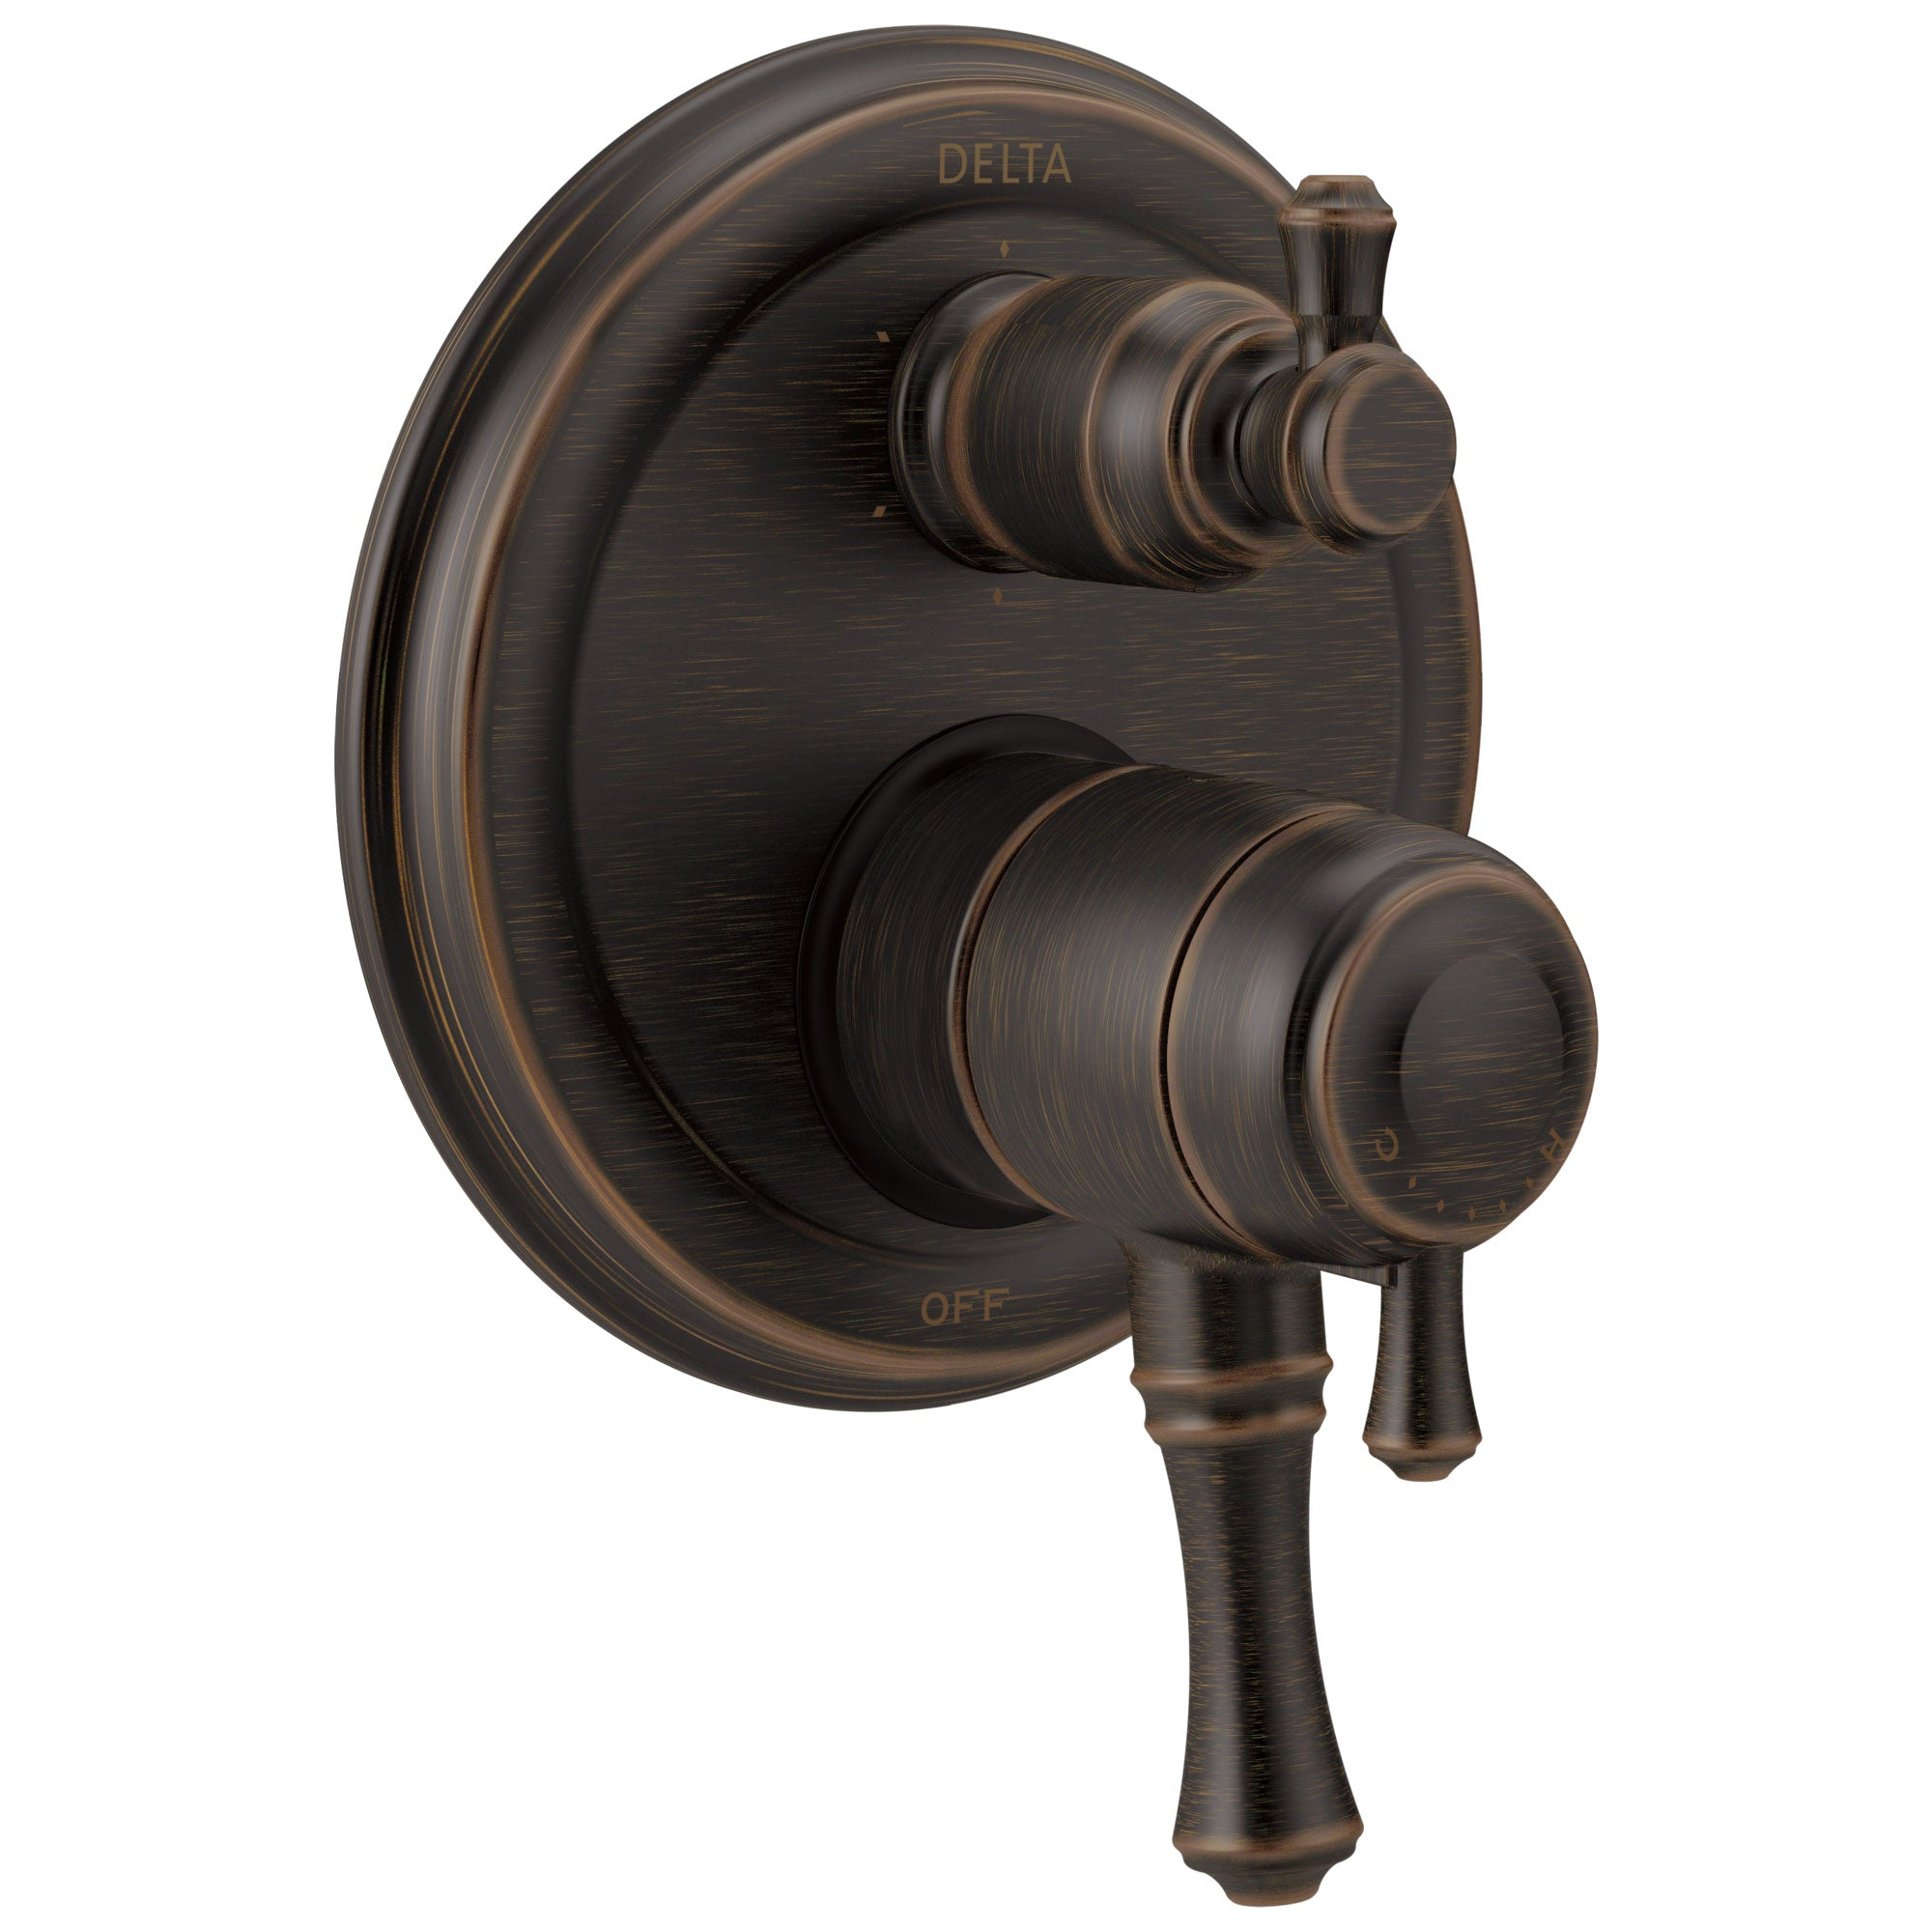 Delta Cassidy Collection Venetian Bronze Traditional Shower Faucet Control Handle with 6-Setting Integrated Diverter Trim (Requires Valve) DT27997RB